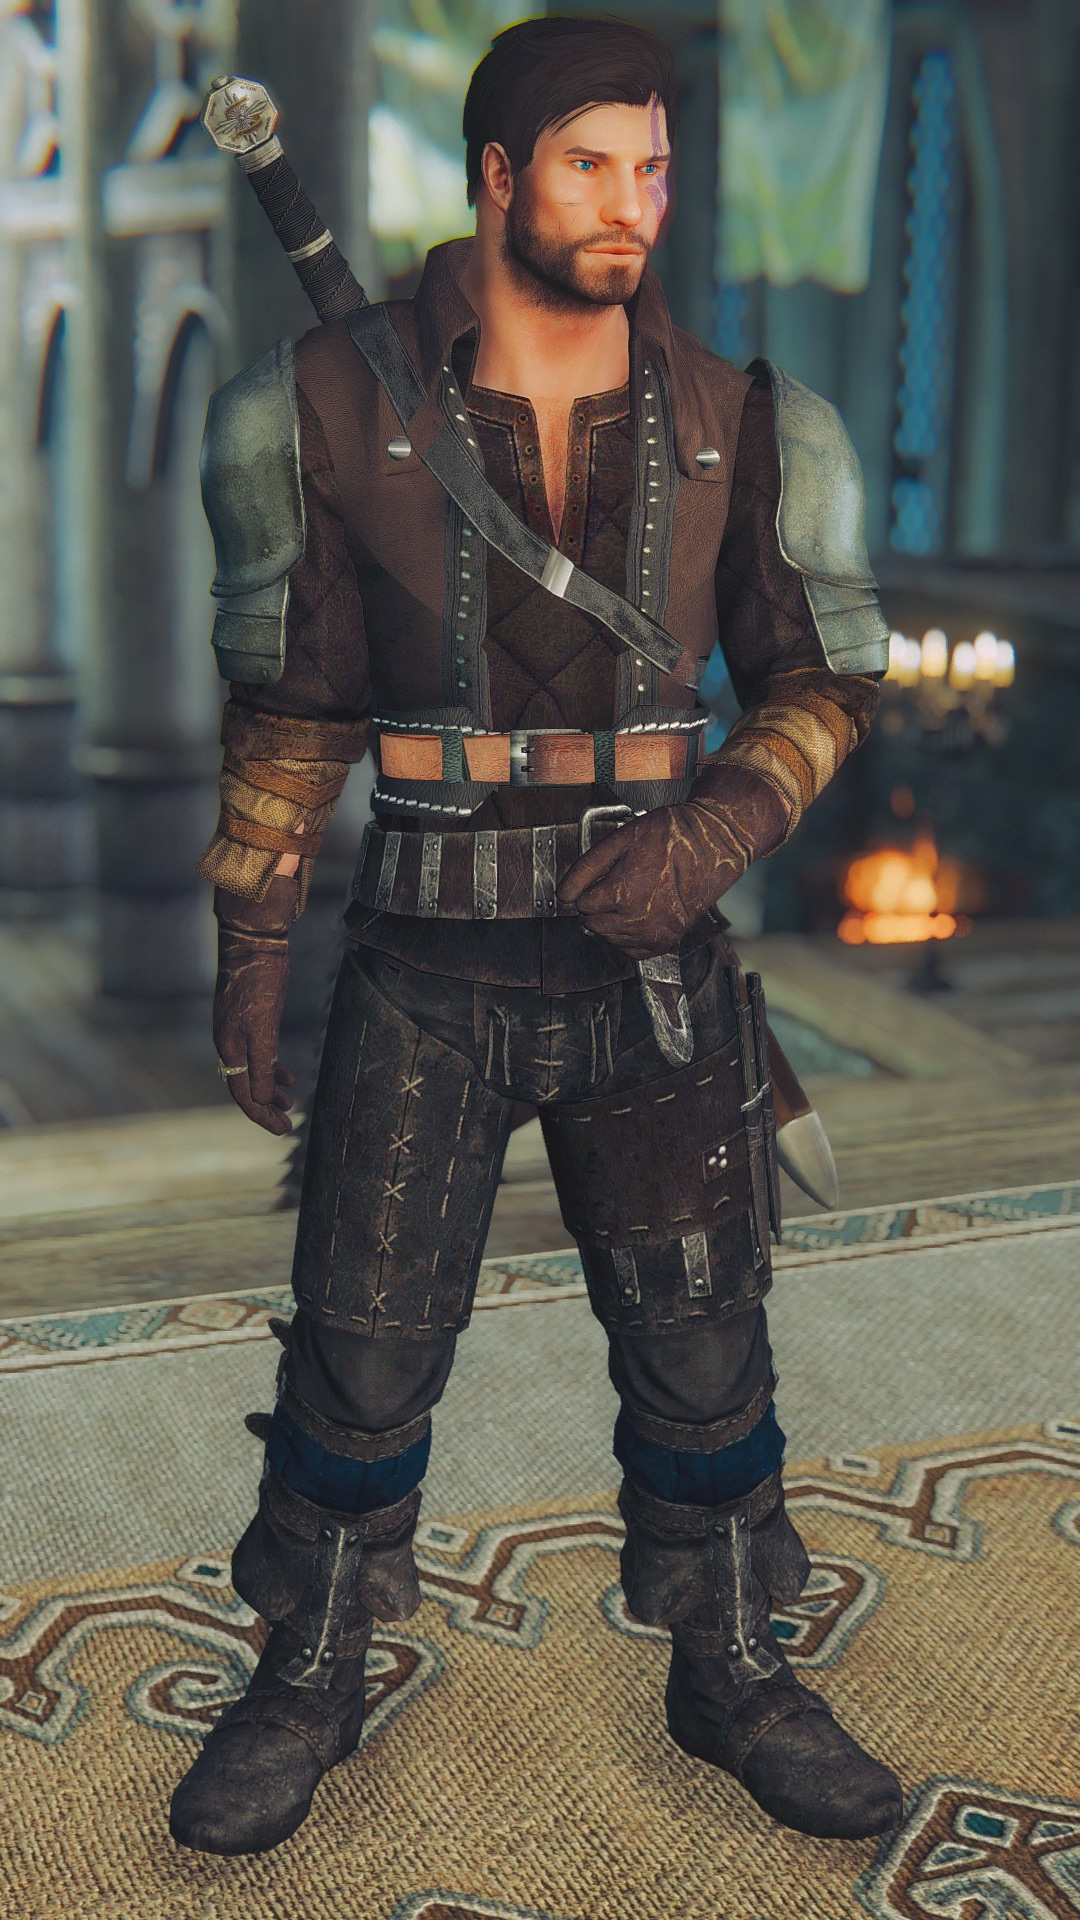 Skyrim male clothing mods - nikees.info